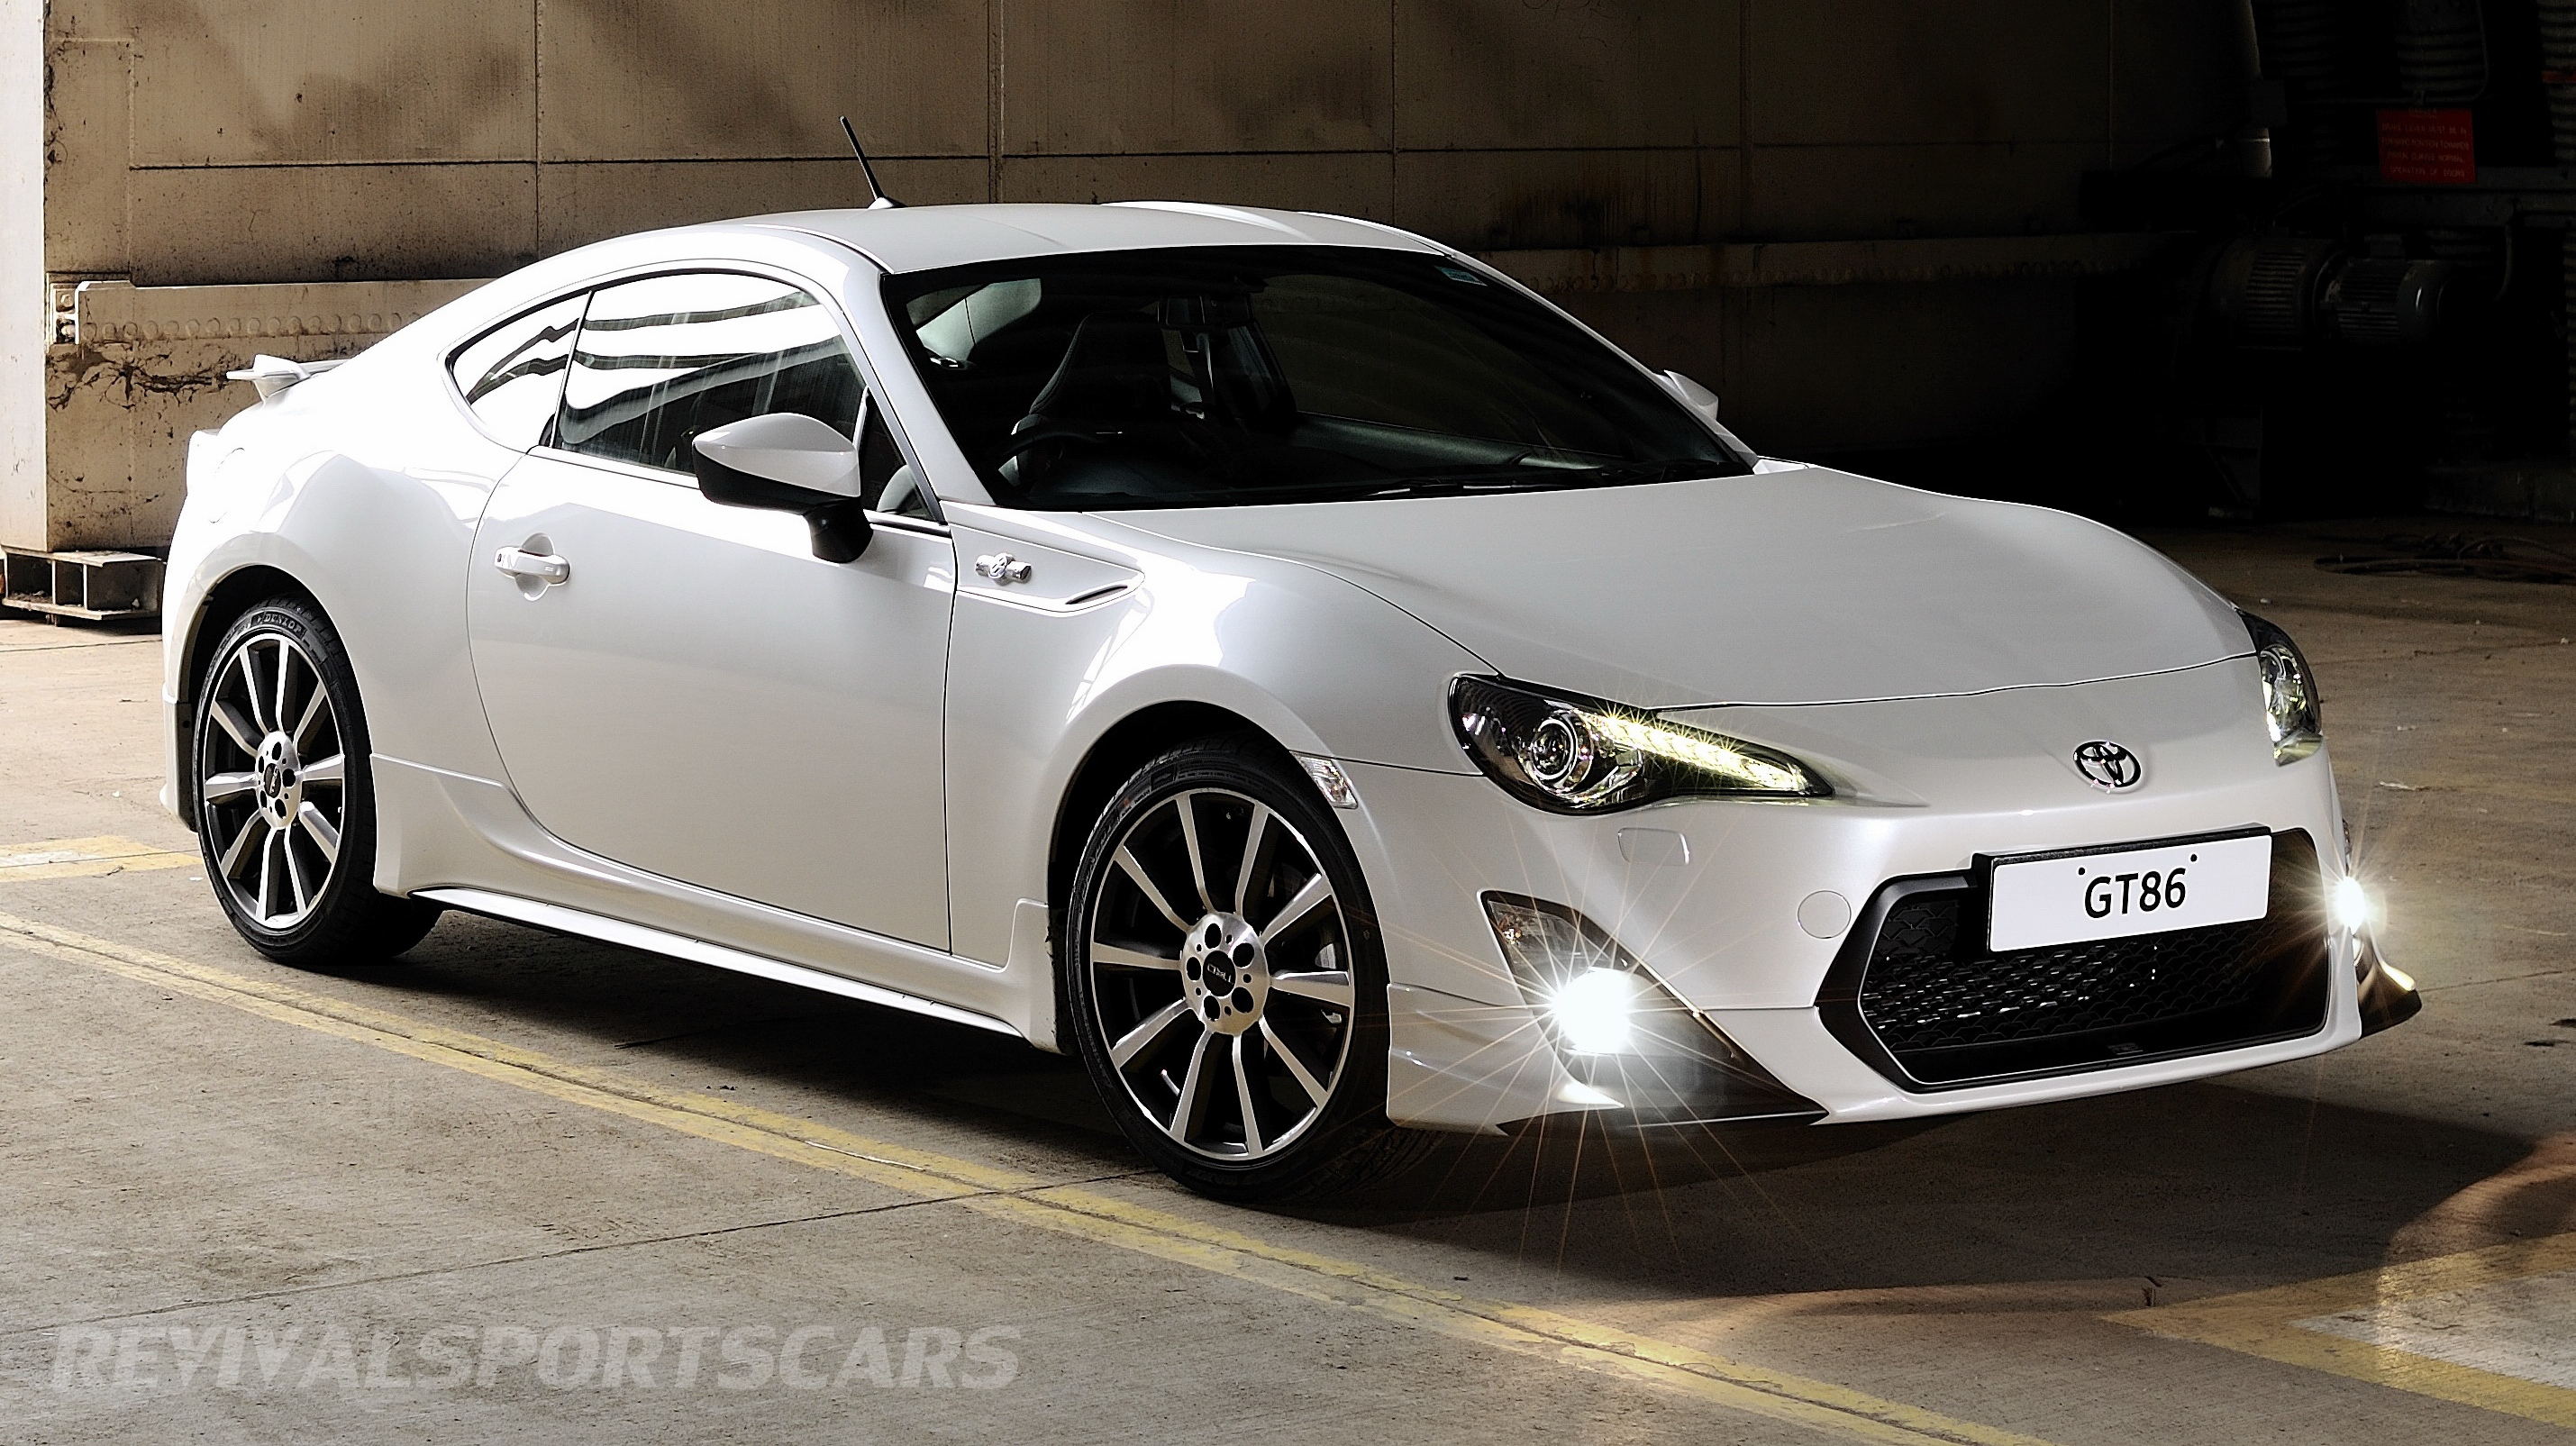 Toyota GT86 TRD upgrades UK 2013 small image